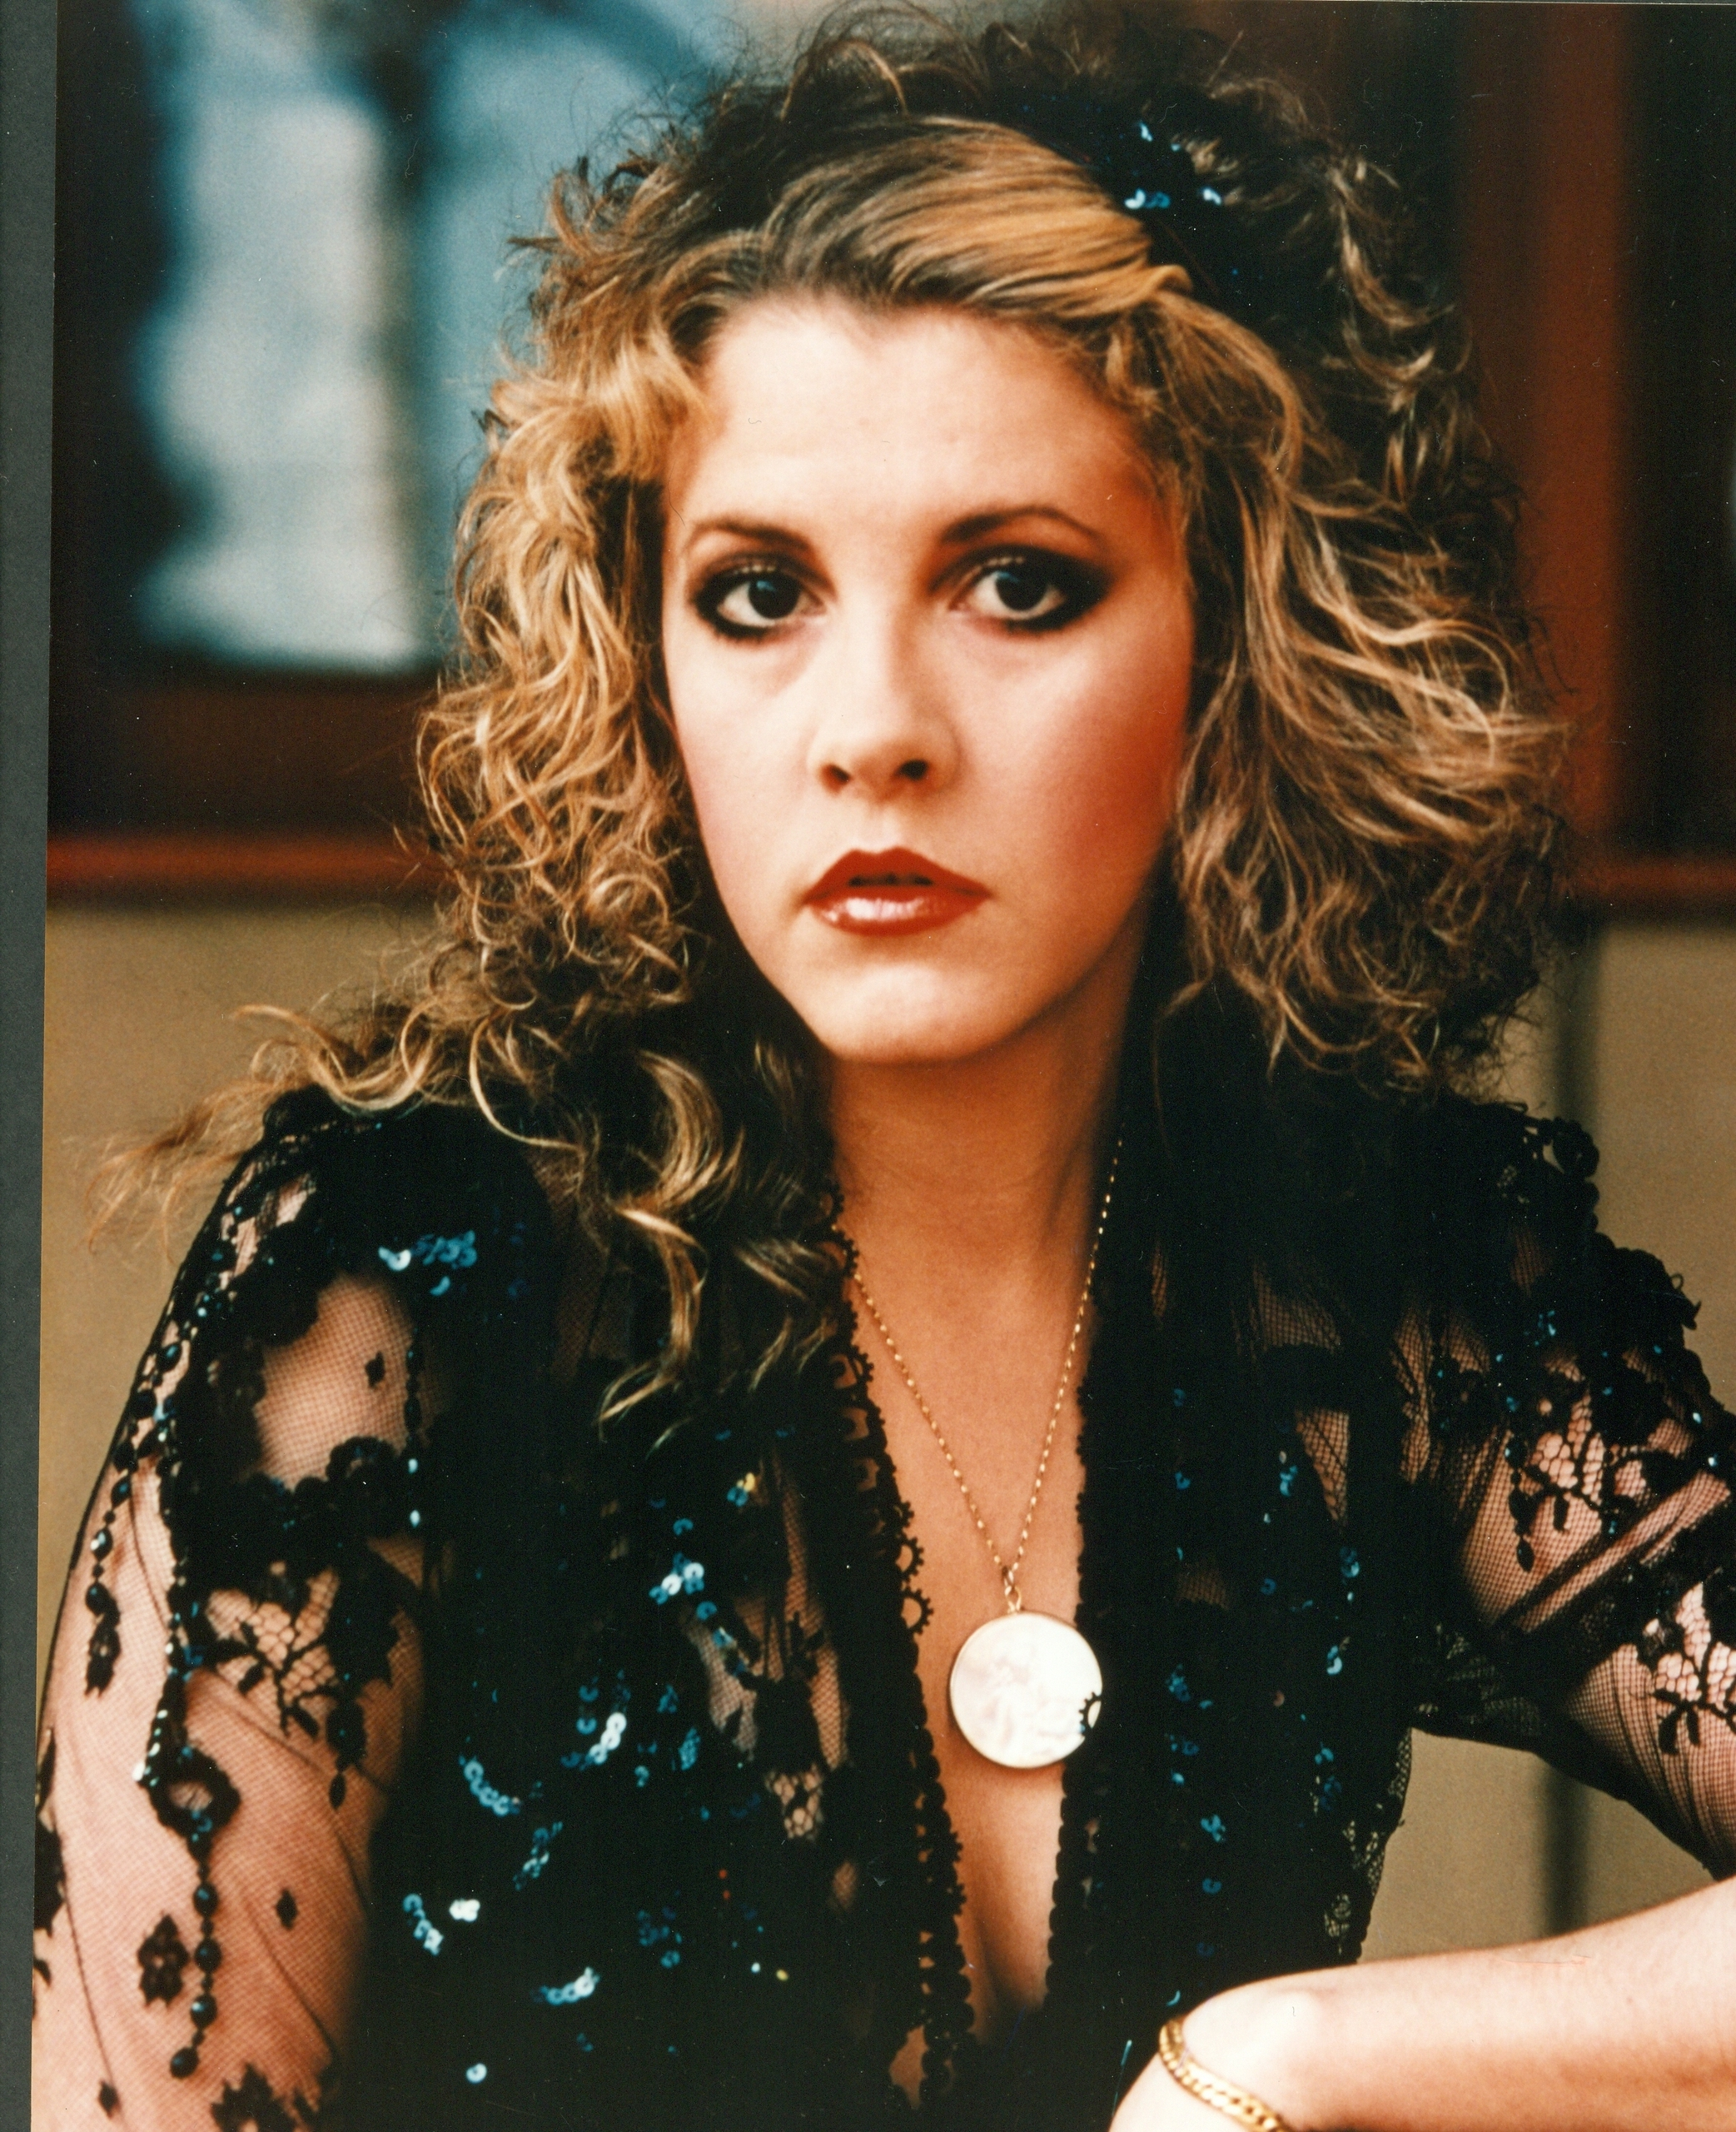 Stevie-Nicks-1